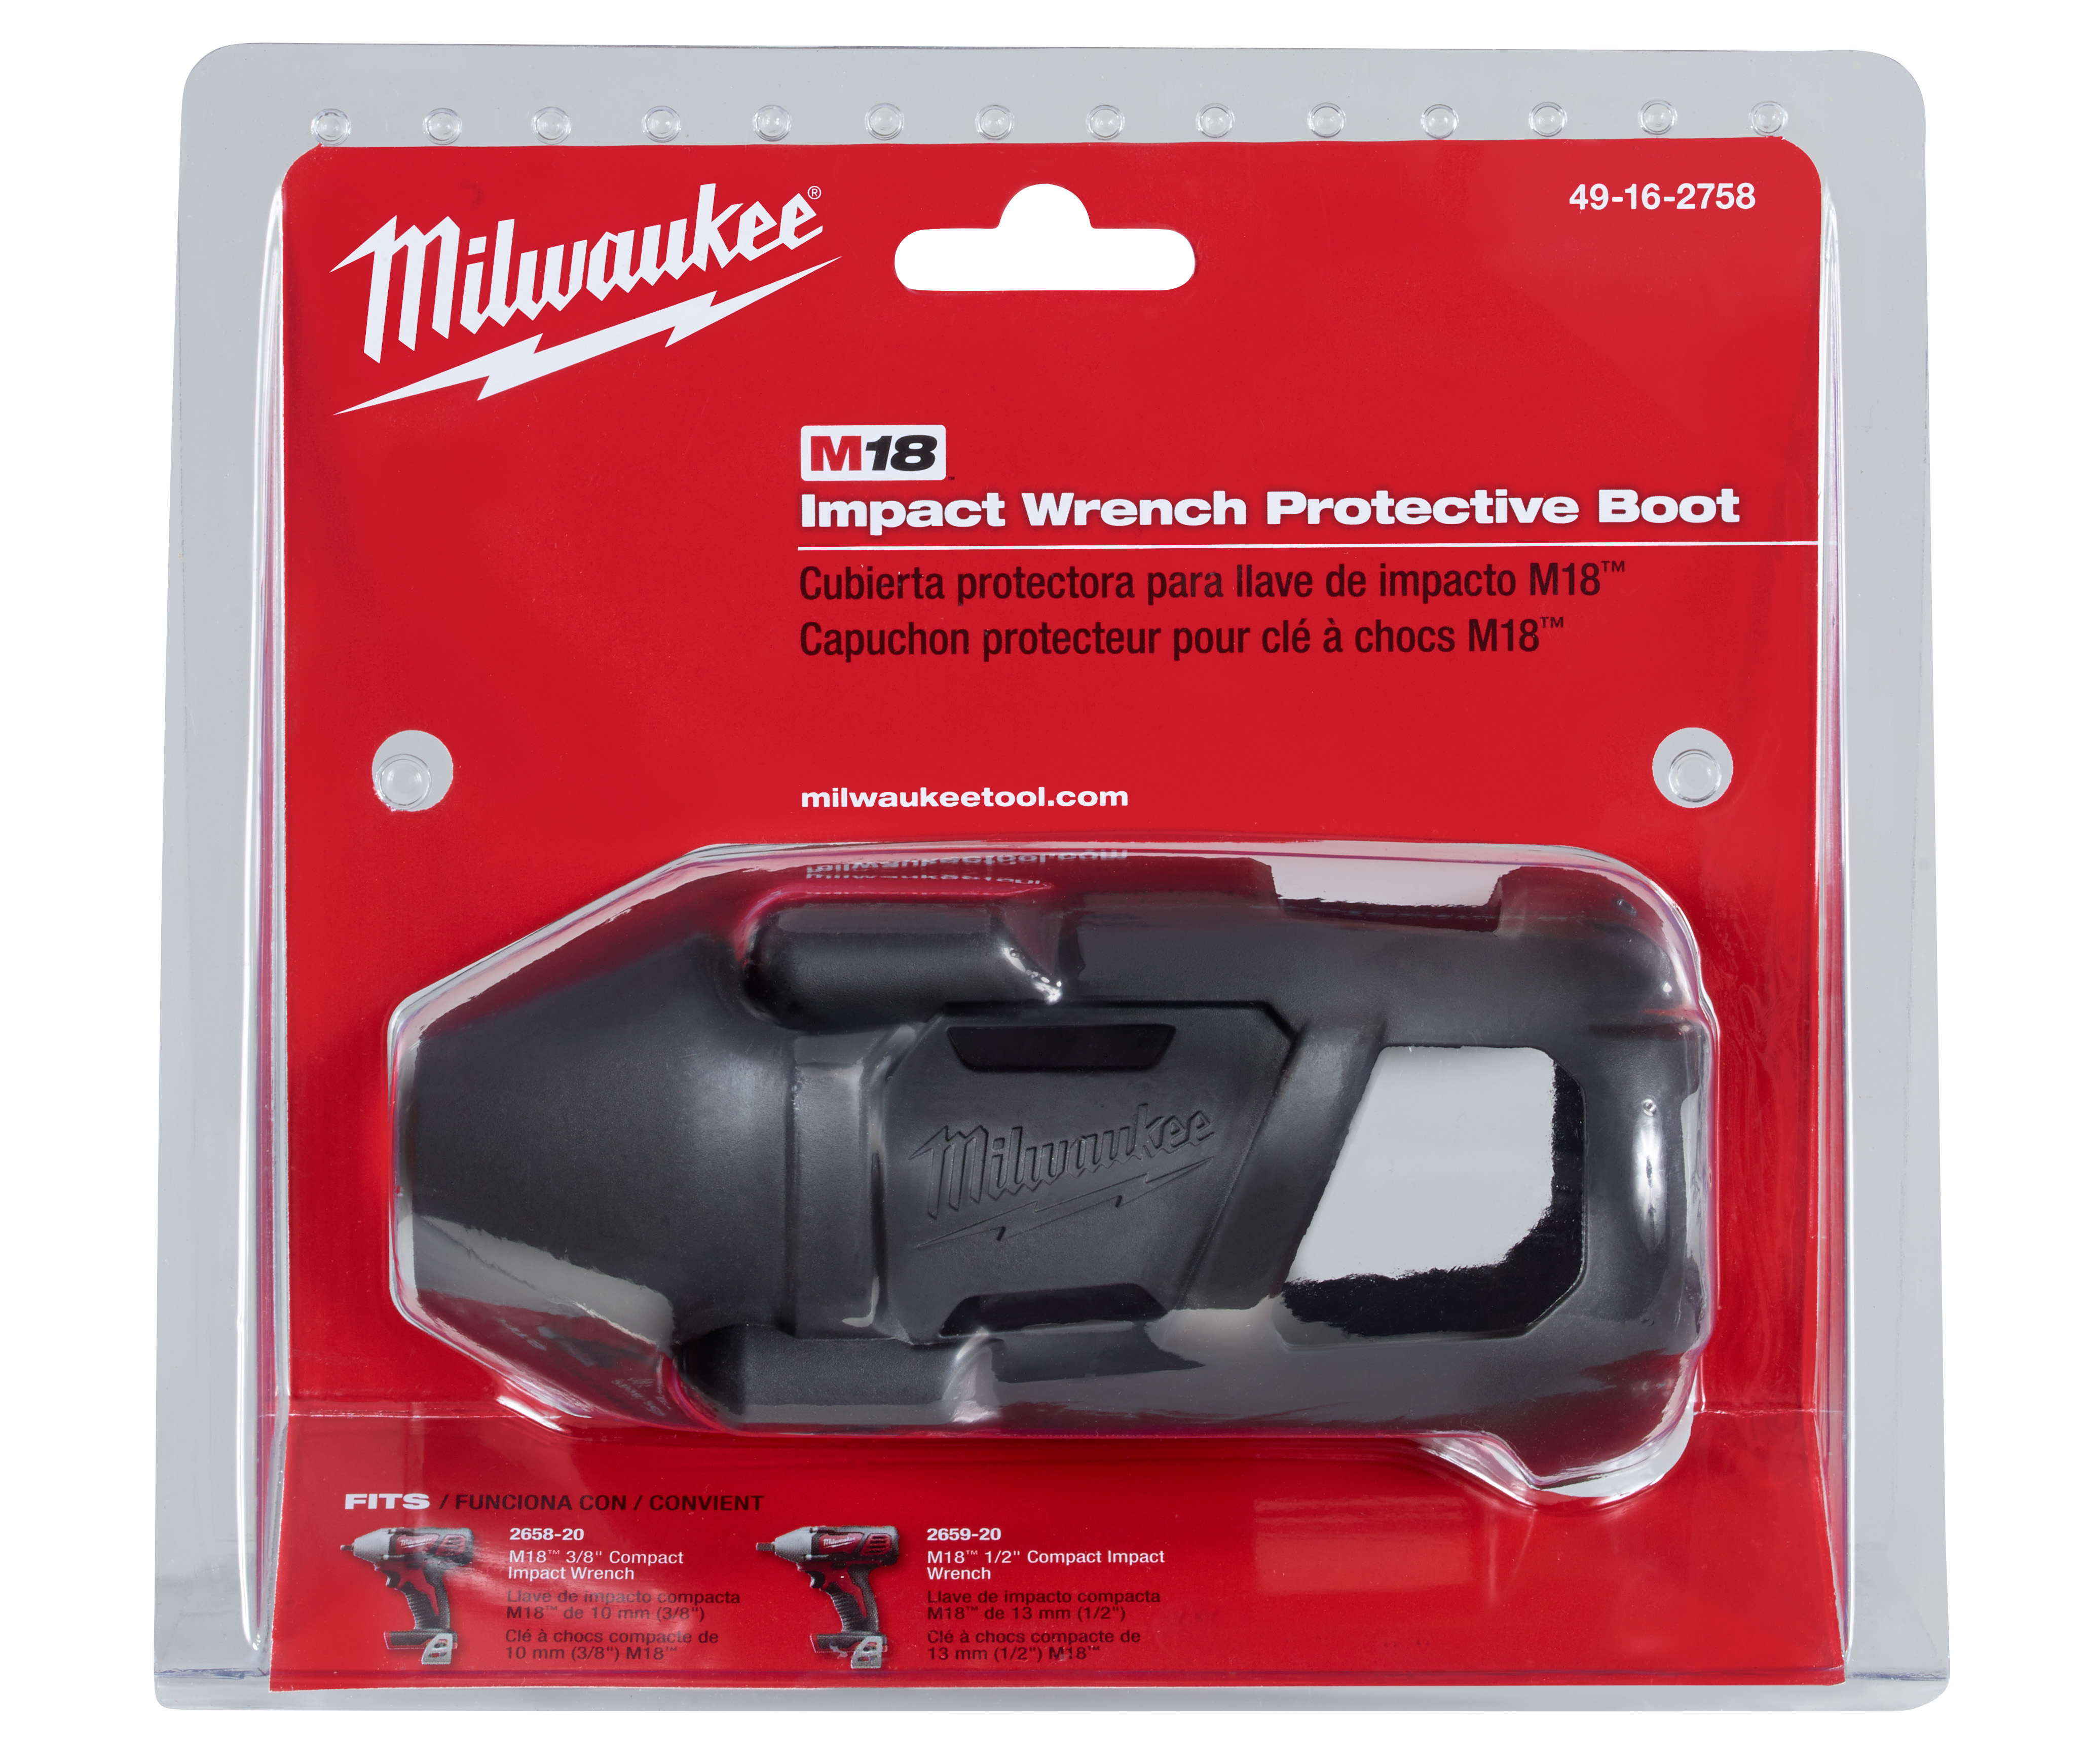 Milwaukee® M18™ 49-16-2758 CPIW Tool Cover, For Use With Milwaukee® M18™ 2658-20 and 2659-20 Compact Impact Wrench